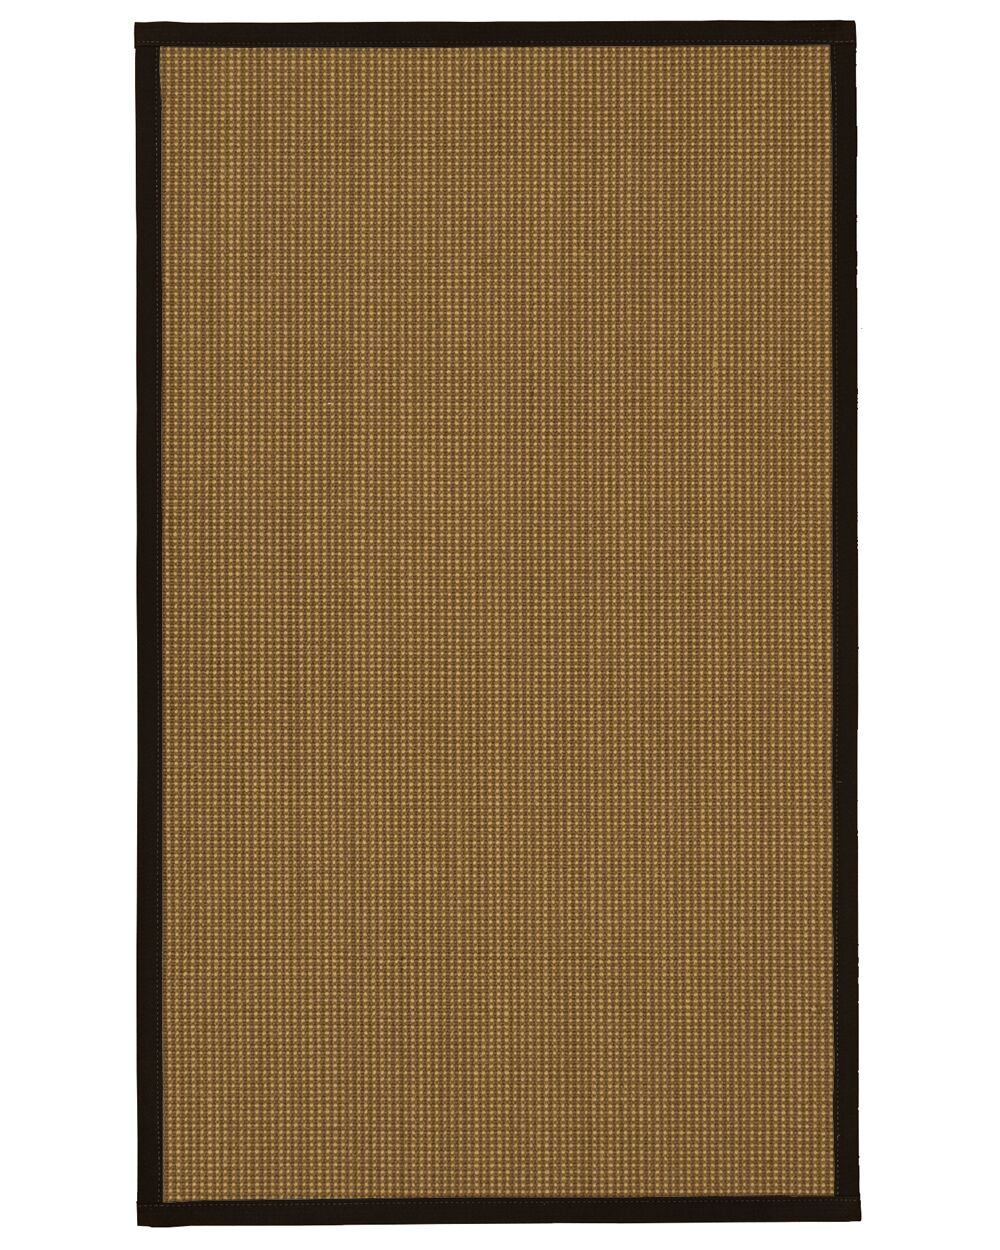 Asther Hand-Woven Beige Area Rug Rug Size: Rectangle 9' x 12'